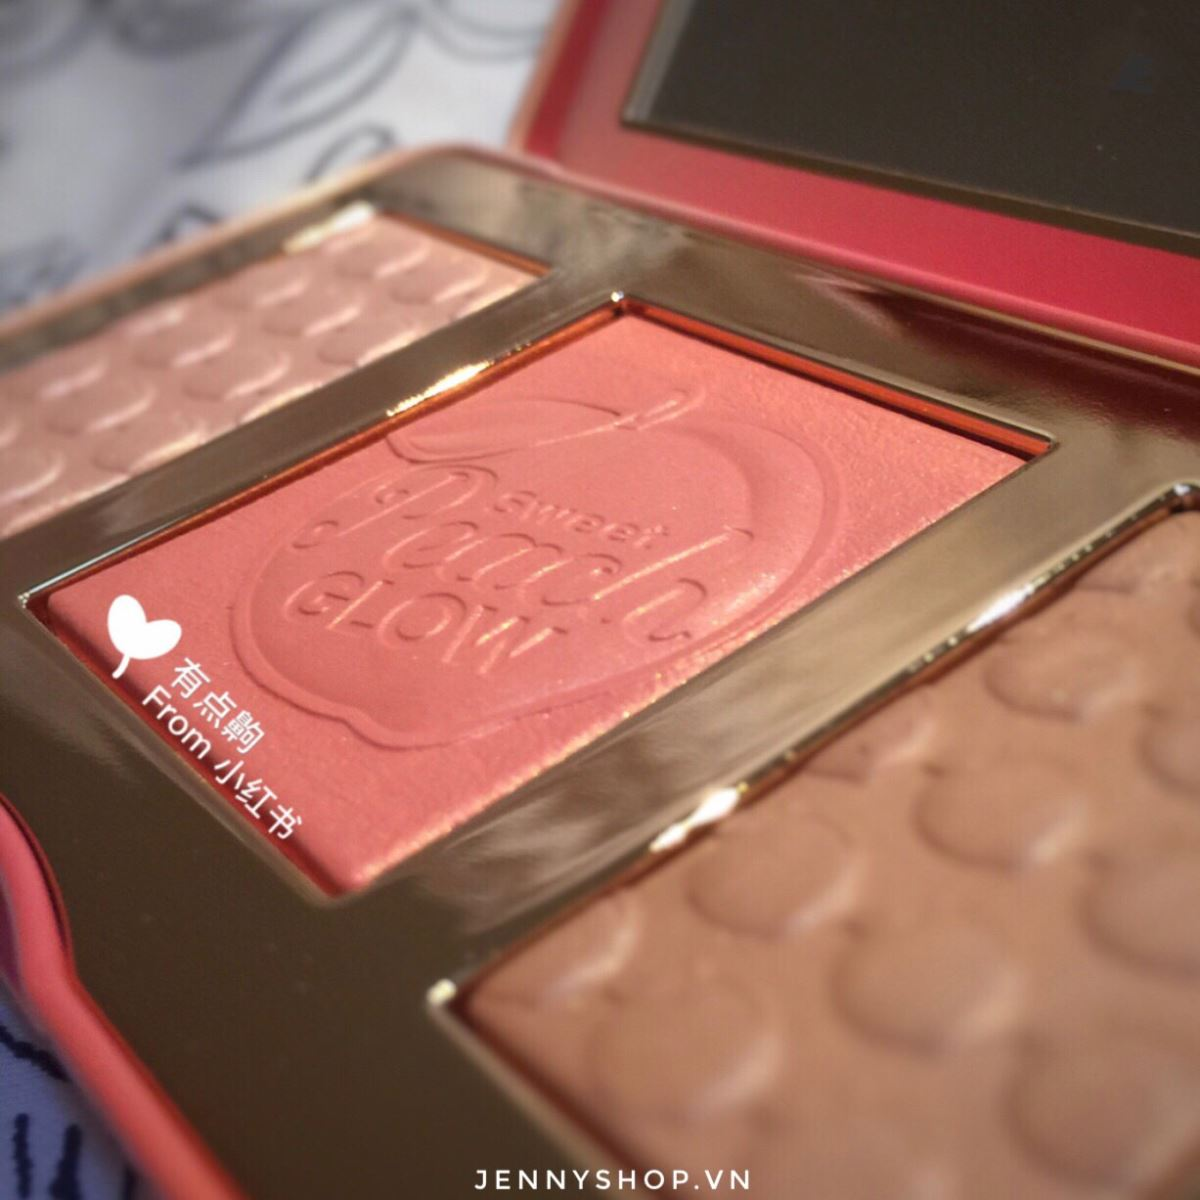 Bảng Má Tạo Khối Bắt Sáng Too Faced Sweet Peach Glow Peach-Infused Highlighting Palette